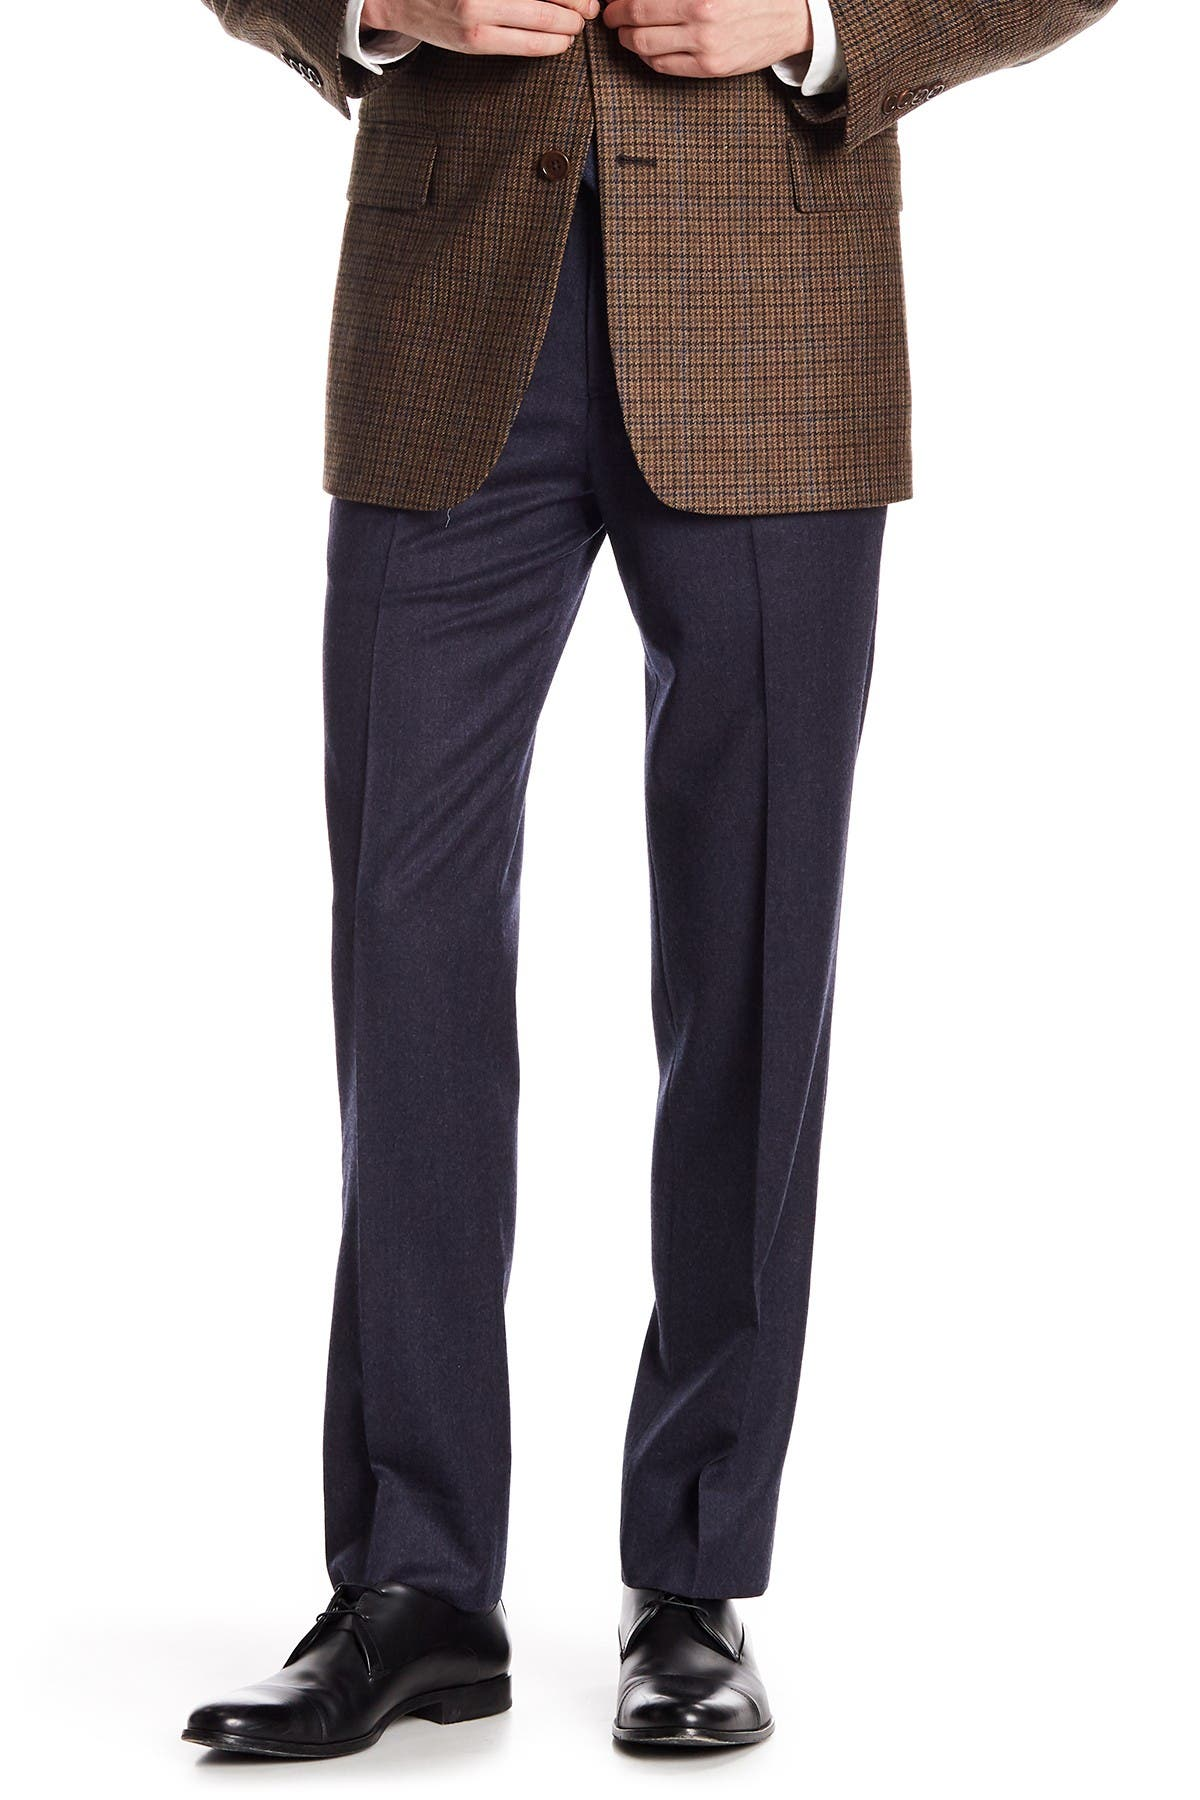 "Image of Brooks Brothers Blue Solid Classic Fit Wool Trousers - 30-34"" Inseam"